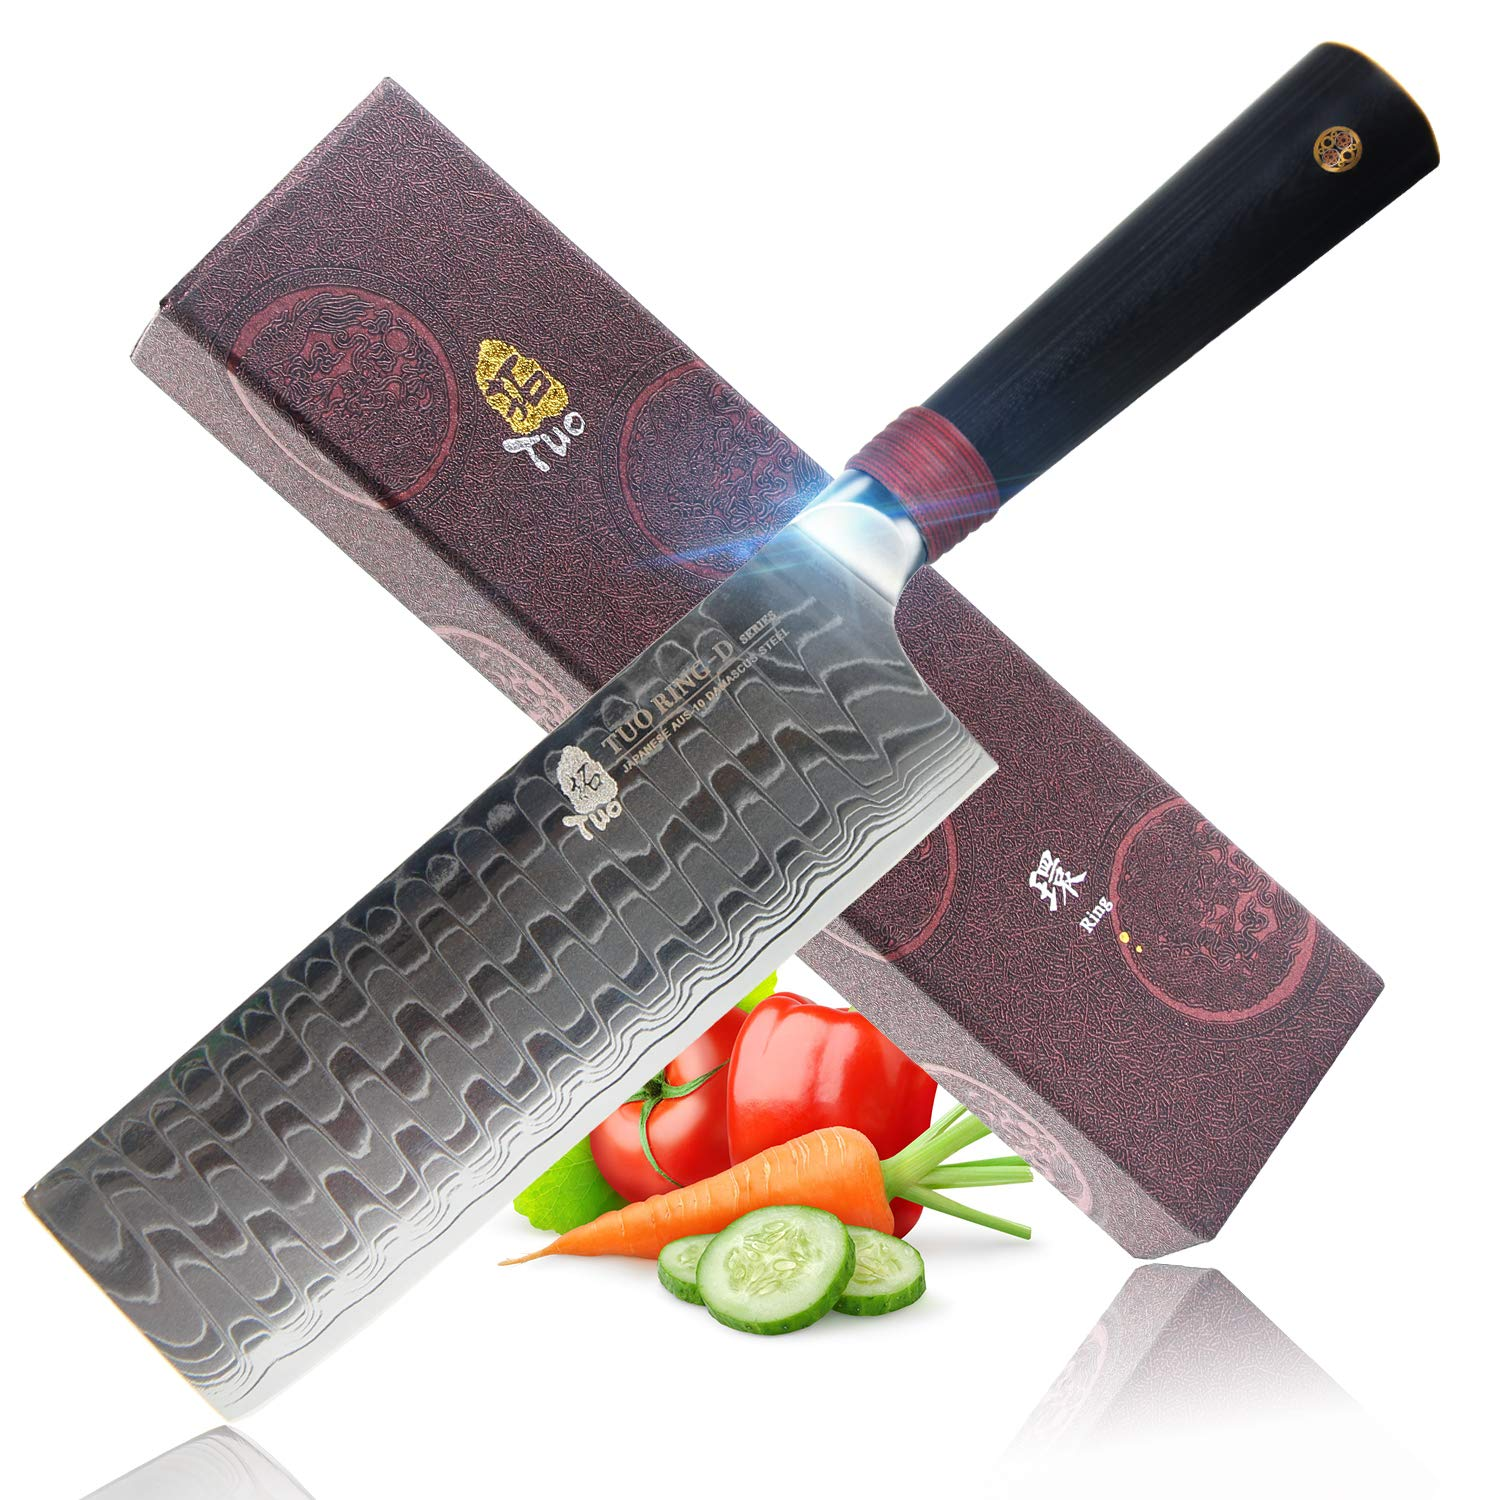 TUO Cutlery Nakiri Knife 6.5'' - Damascus Vegetable Cleaver Kitchen Knives - Japanese AUS-10 High Carbon Stainless Steel Cutting Core Blade - Damascus Pattern - G10 Handle - Gift Box - Ring-D Series by TUO (Image #1)